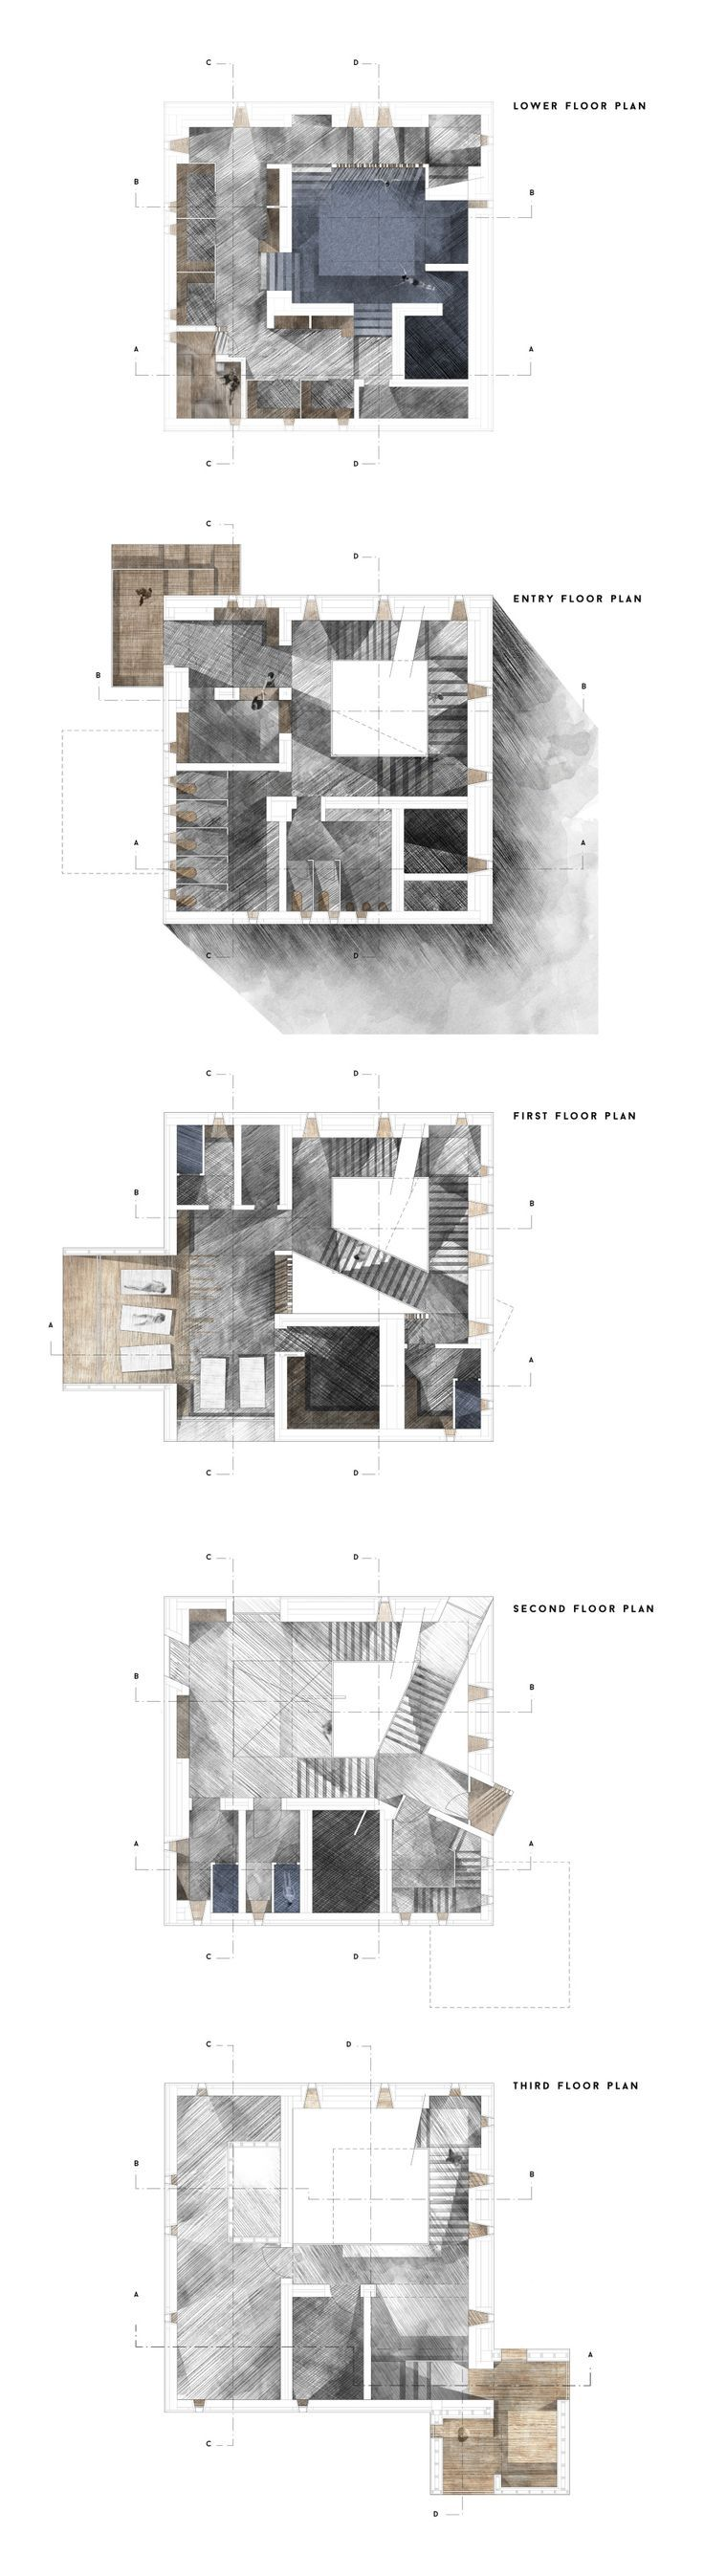 Very atmospheric floor plans by Alex Kindlen